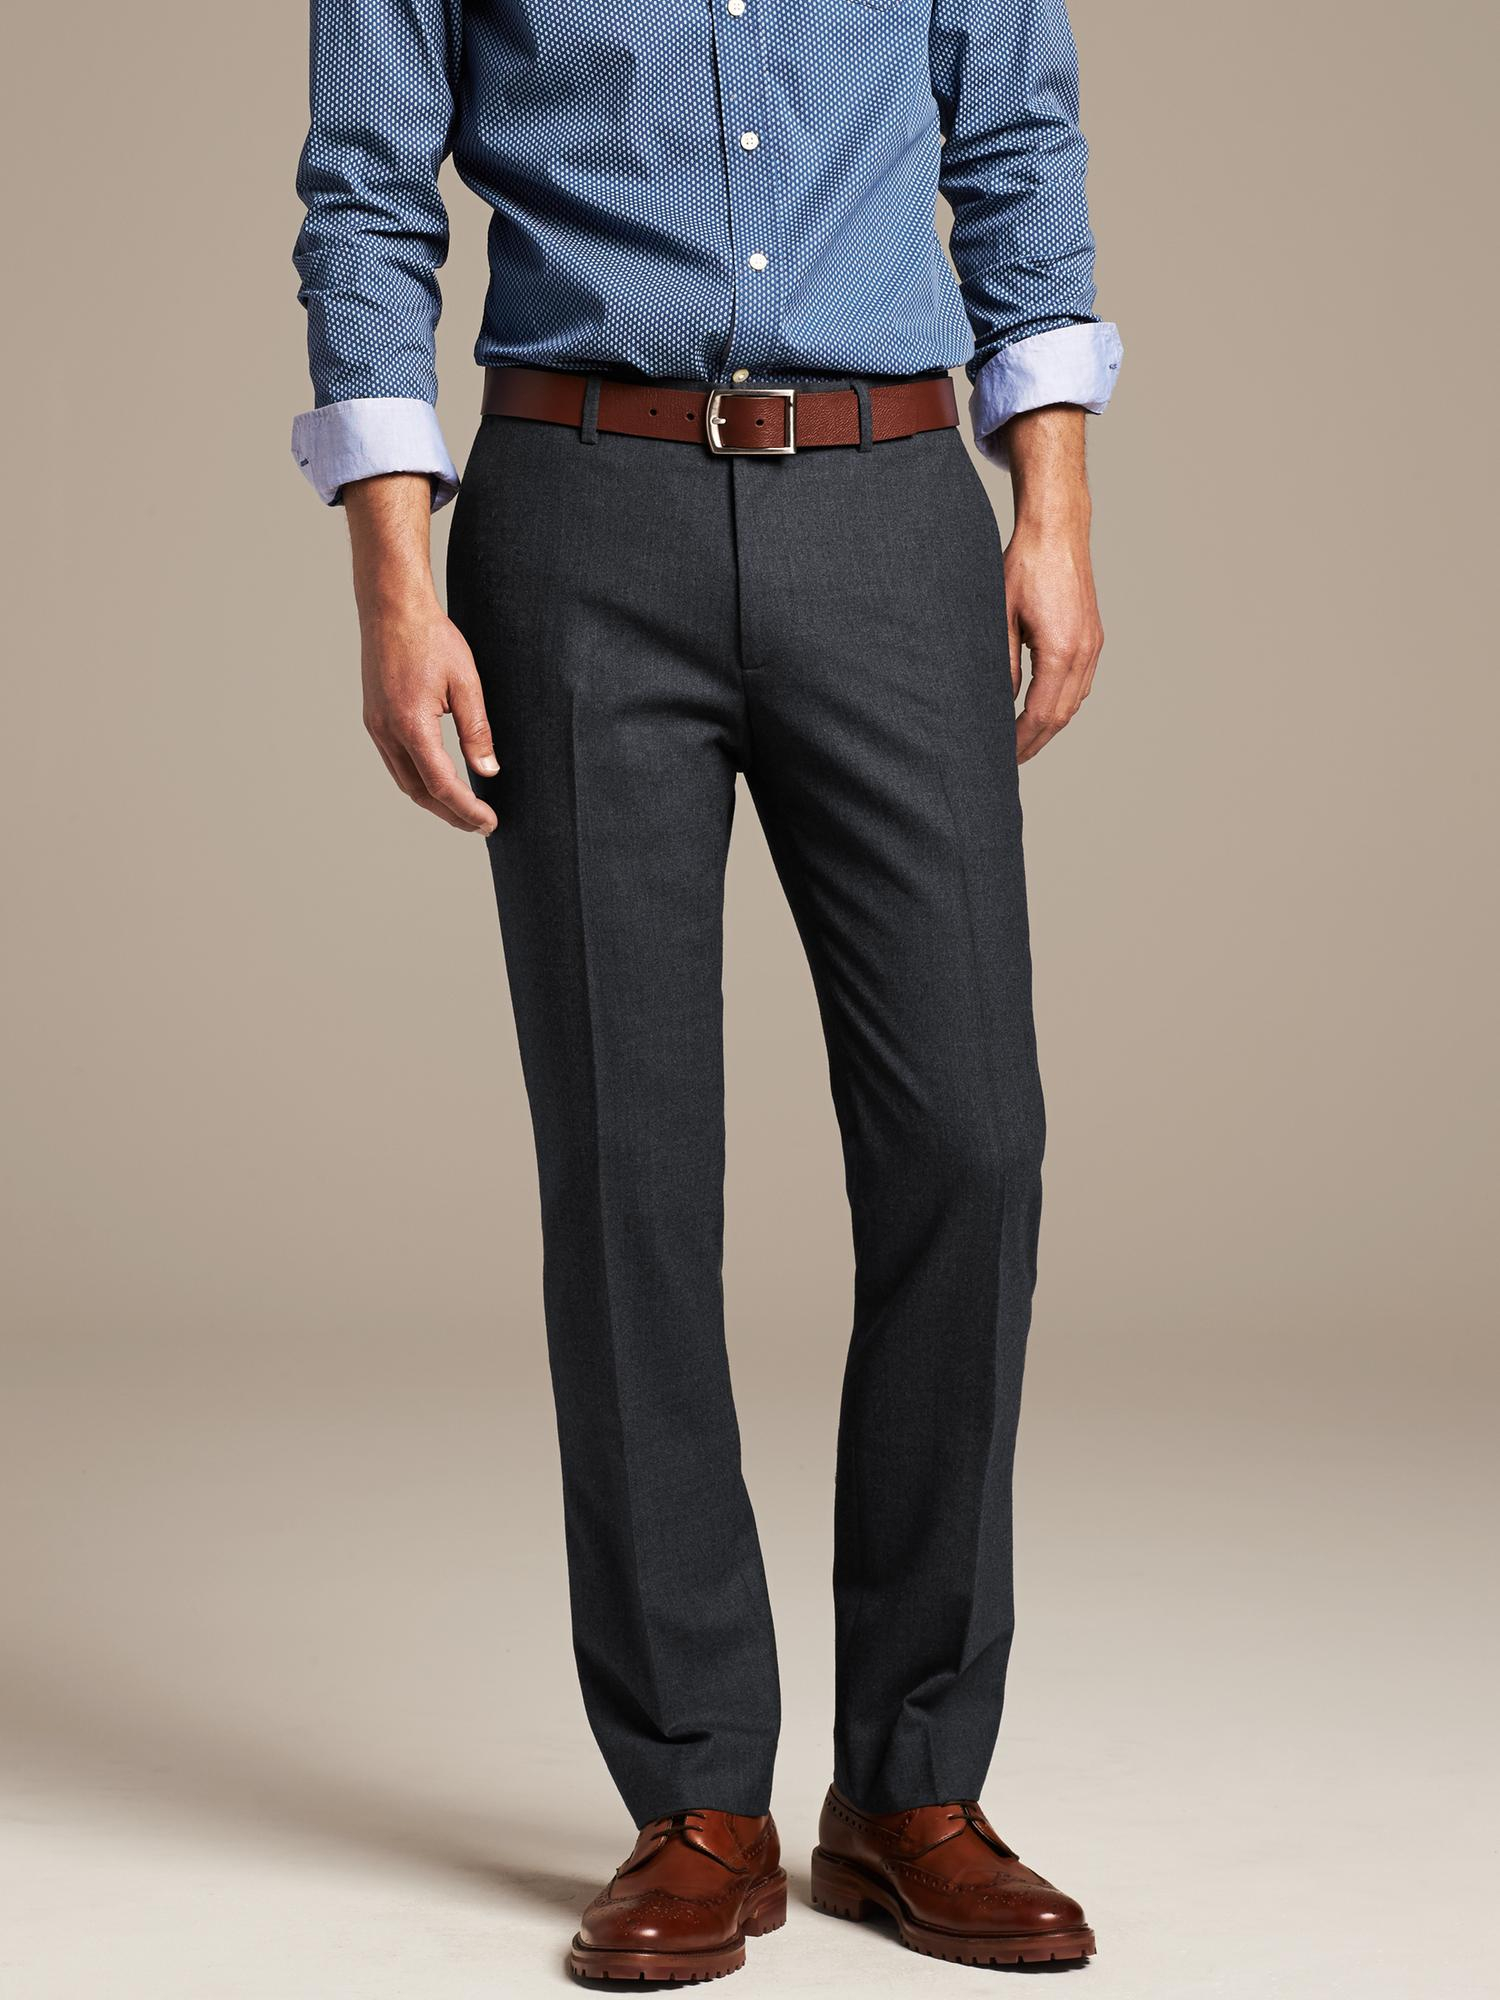 Banana Republic Tailored Slim Fit Flannel Dress Pant In